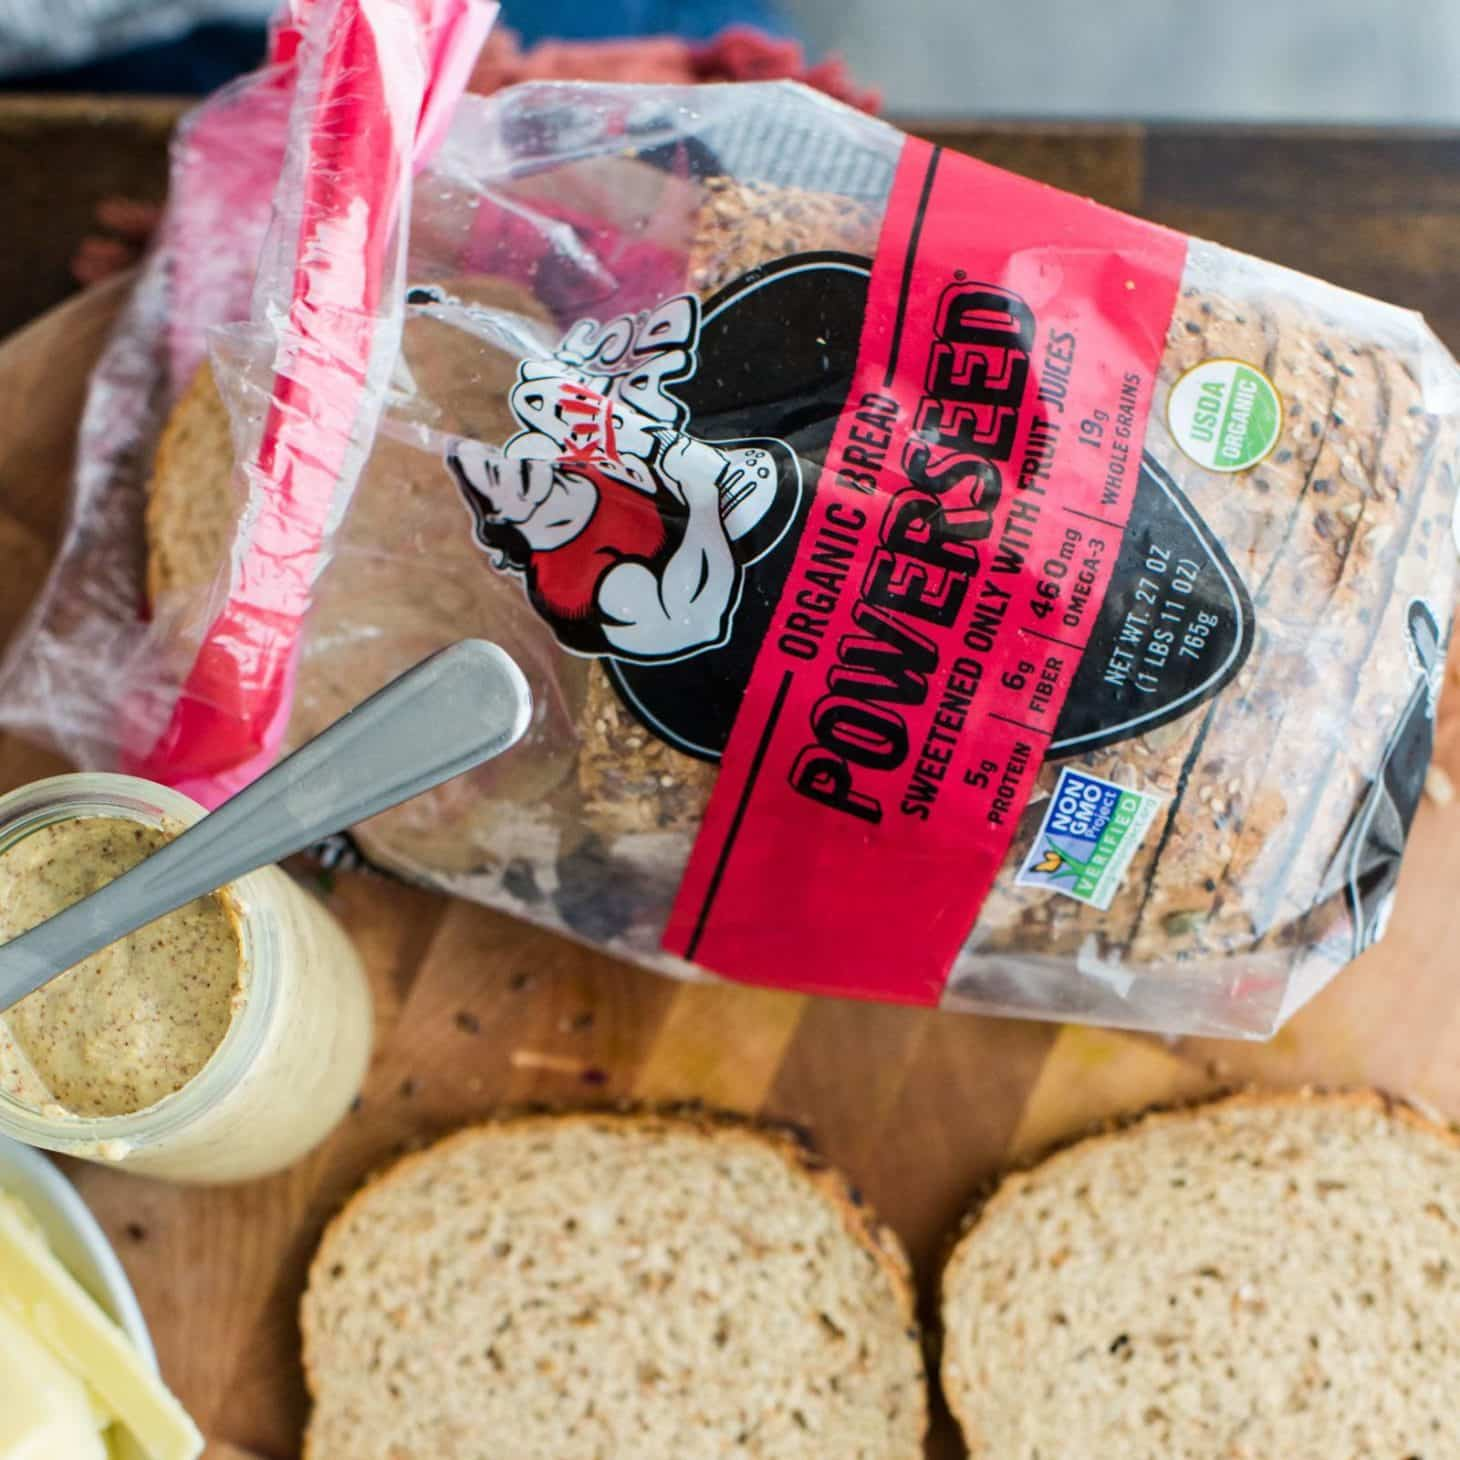 Daves_powerseed_bread